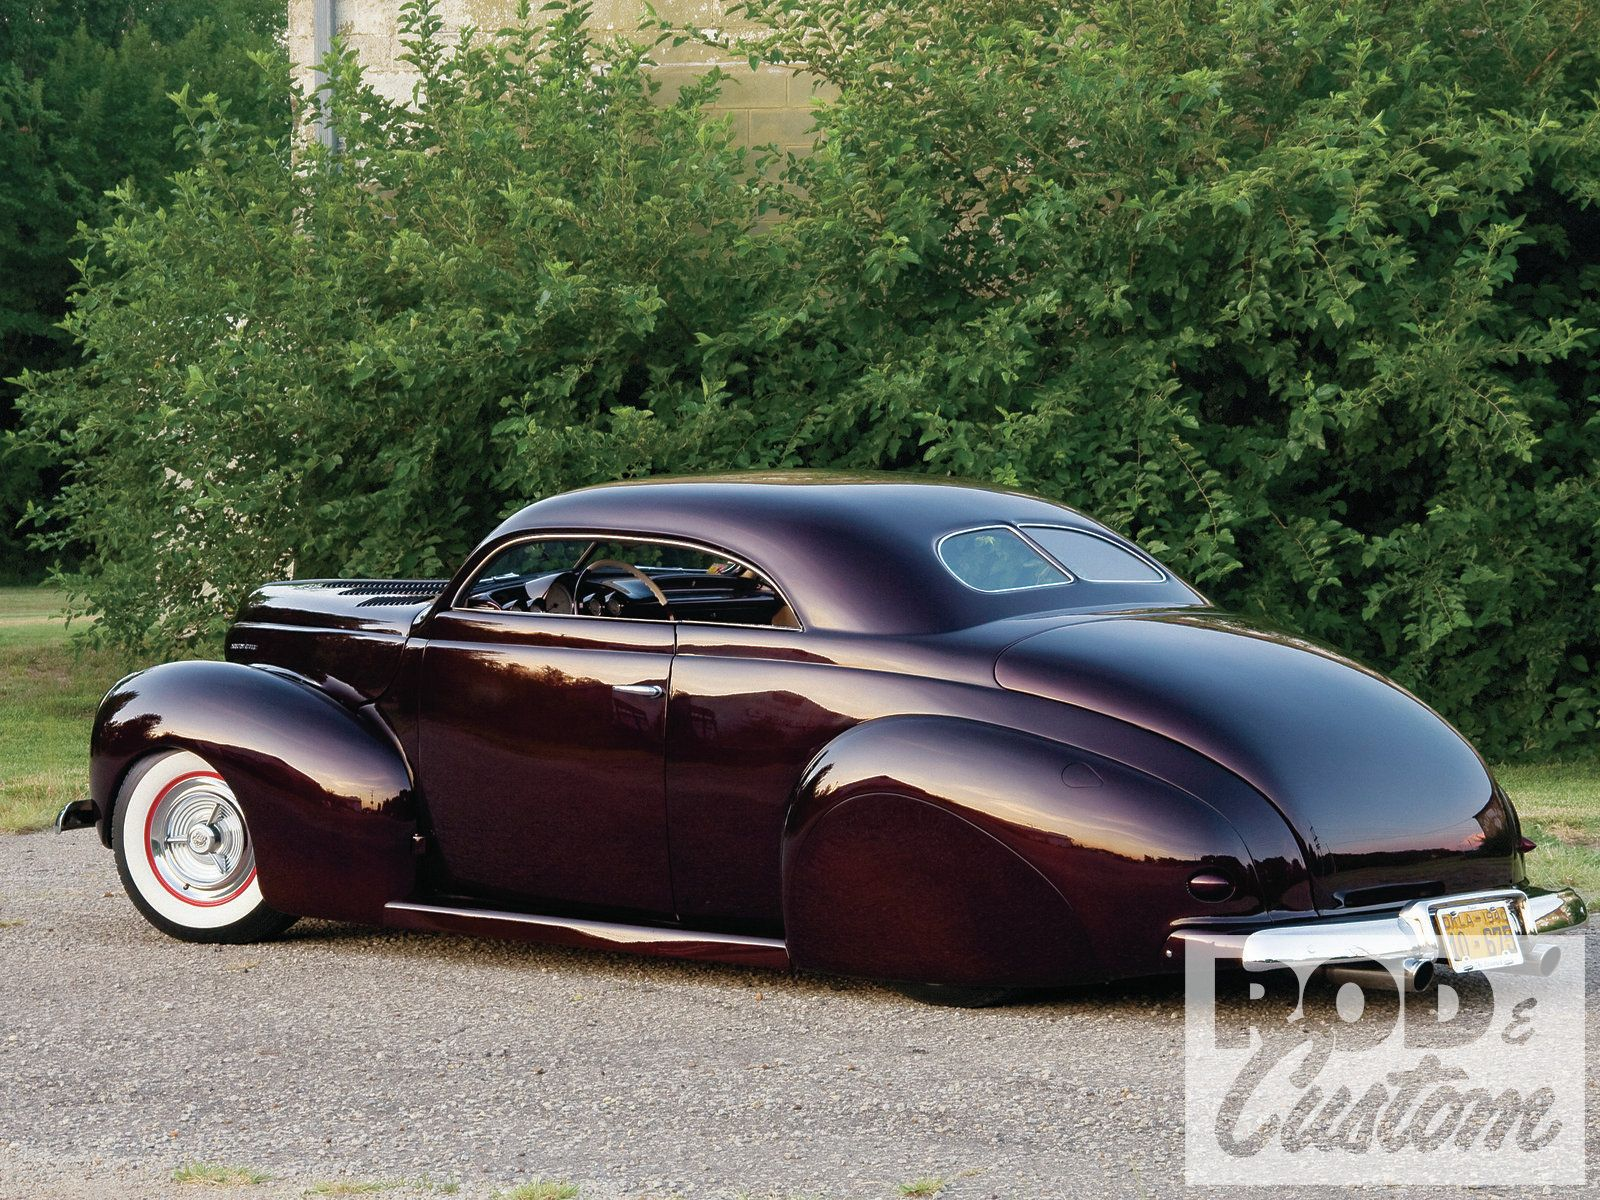 1940s Coupe | 1940 Mercury Coupe | Awesome Cars I Love | Pinterest ...